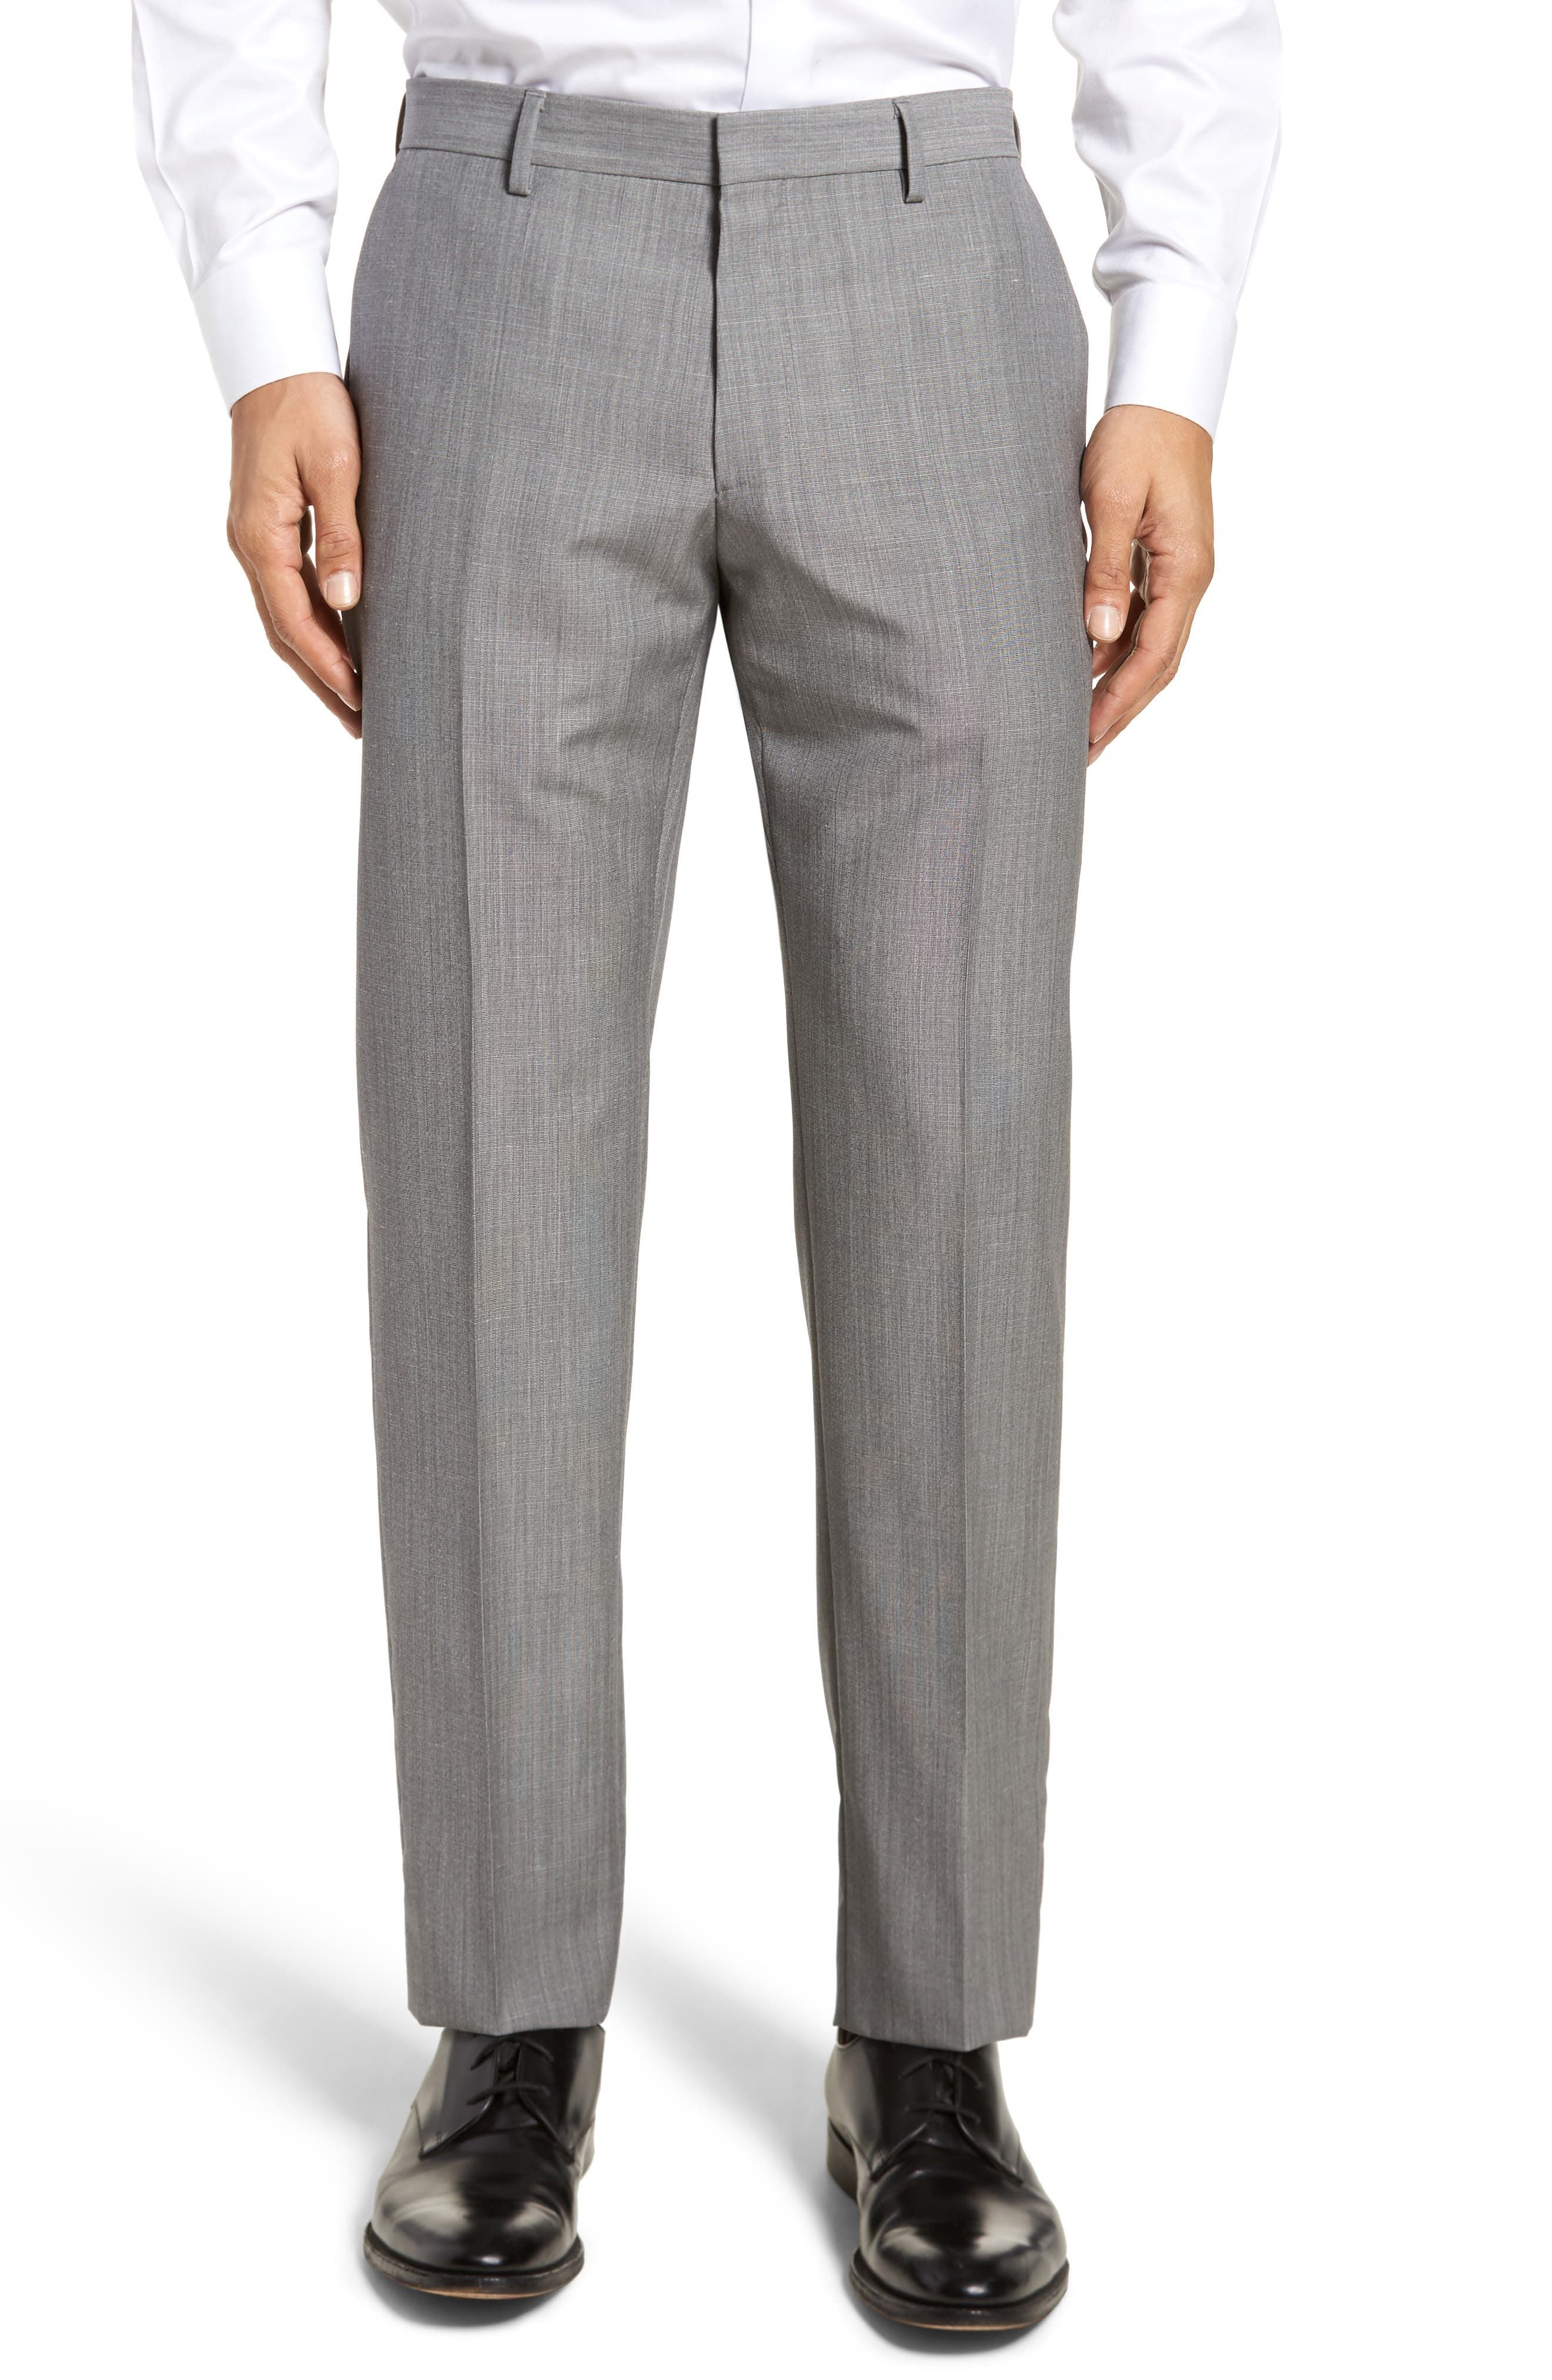 Genesis Flat Front Trim Fit Wool Trousers,                         Main,                         color, Open Grey